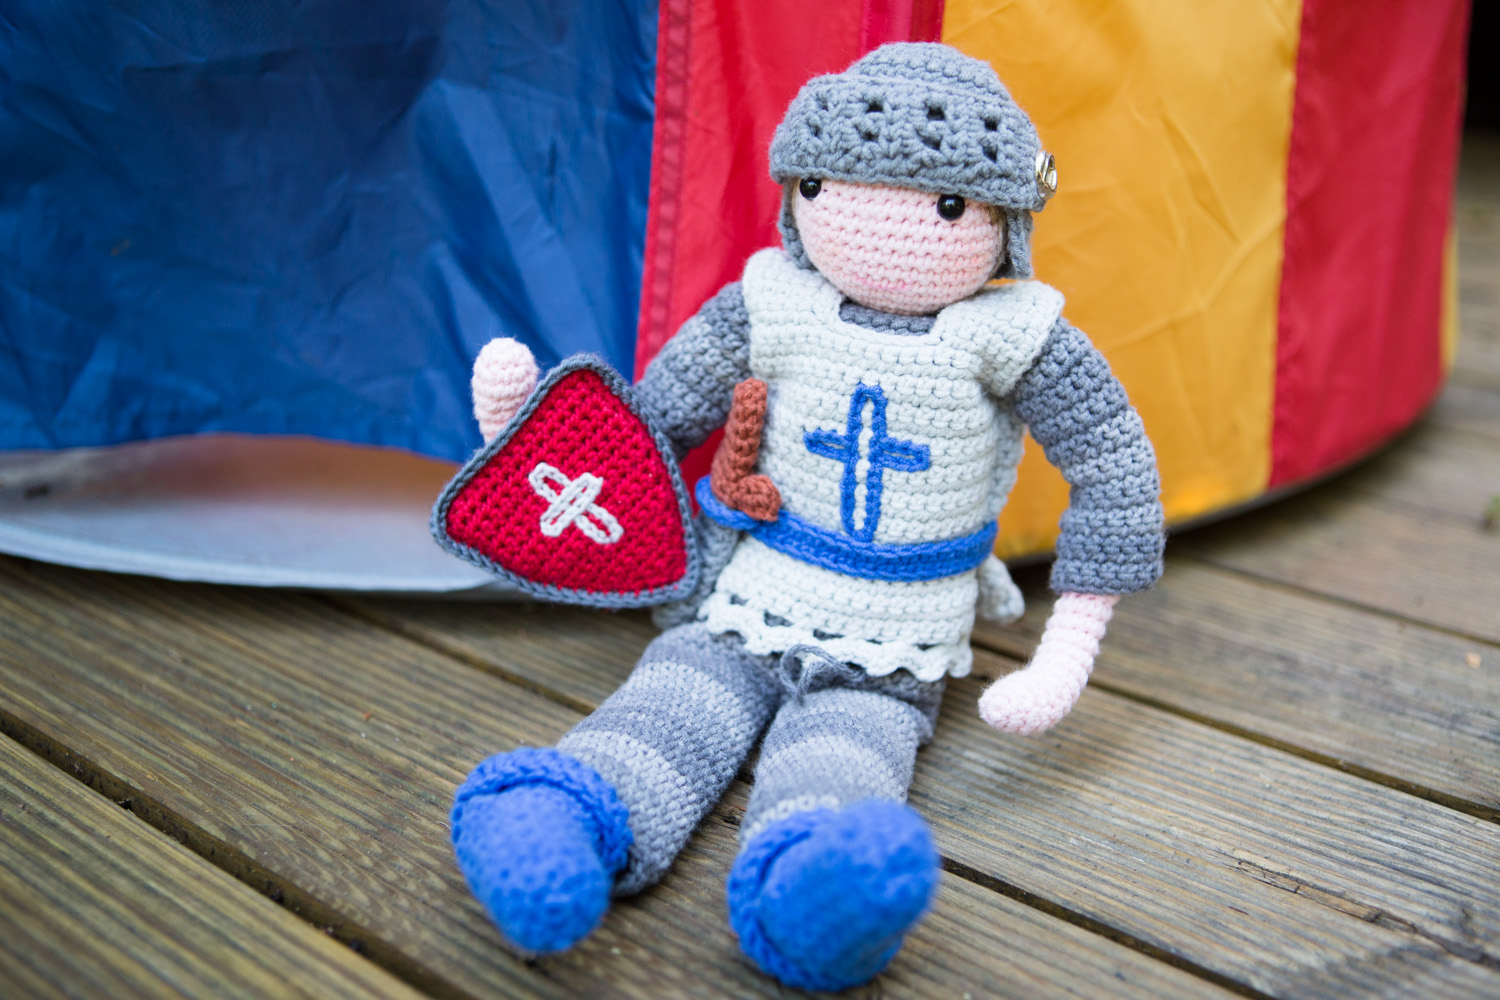 Amigurumi Magazine Uk : Knight doll inside crochet magazine inside crochet